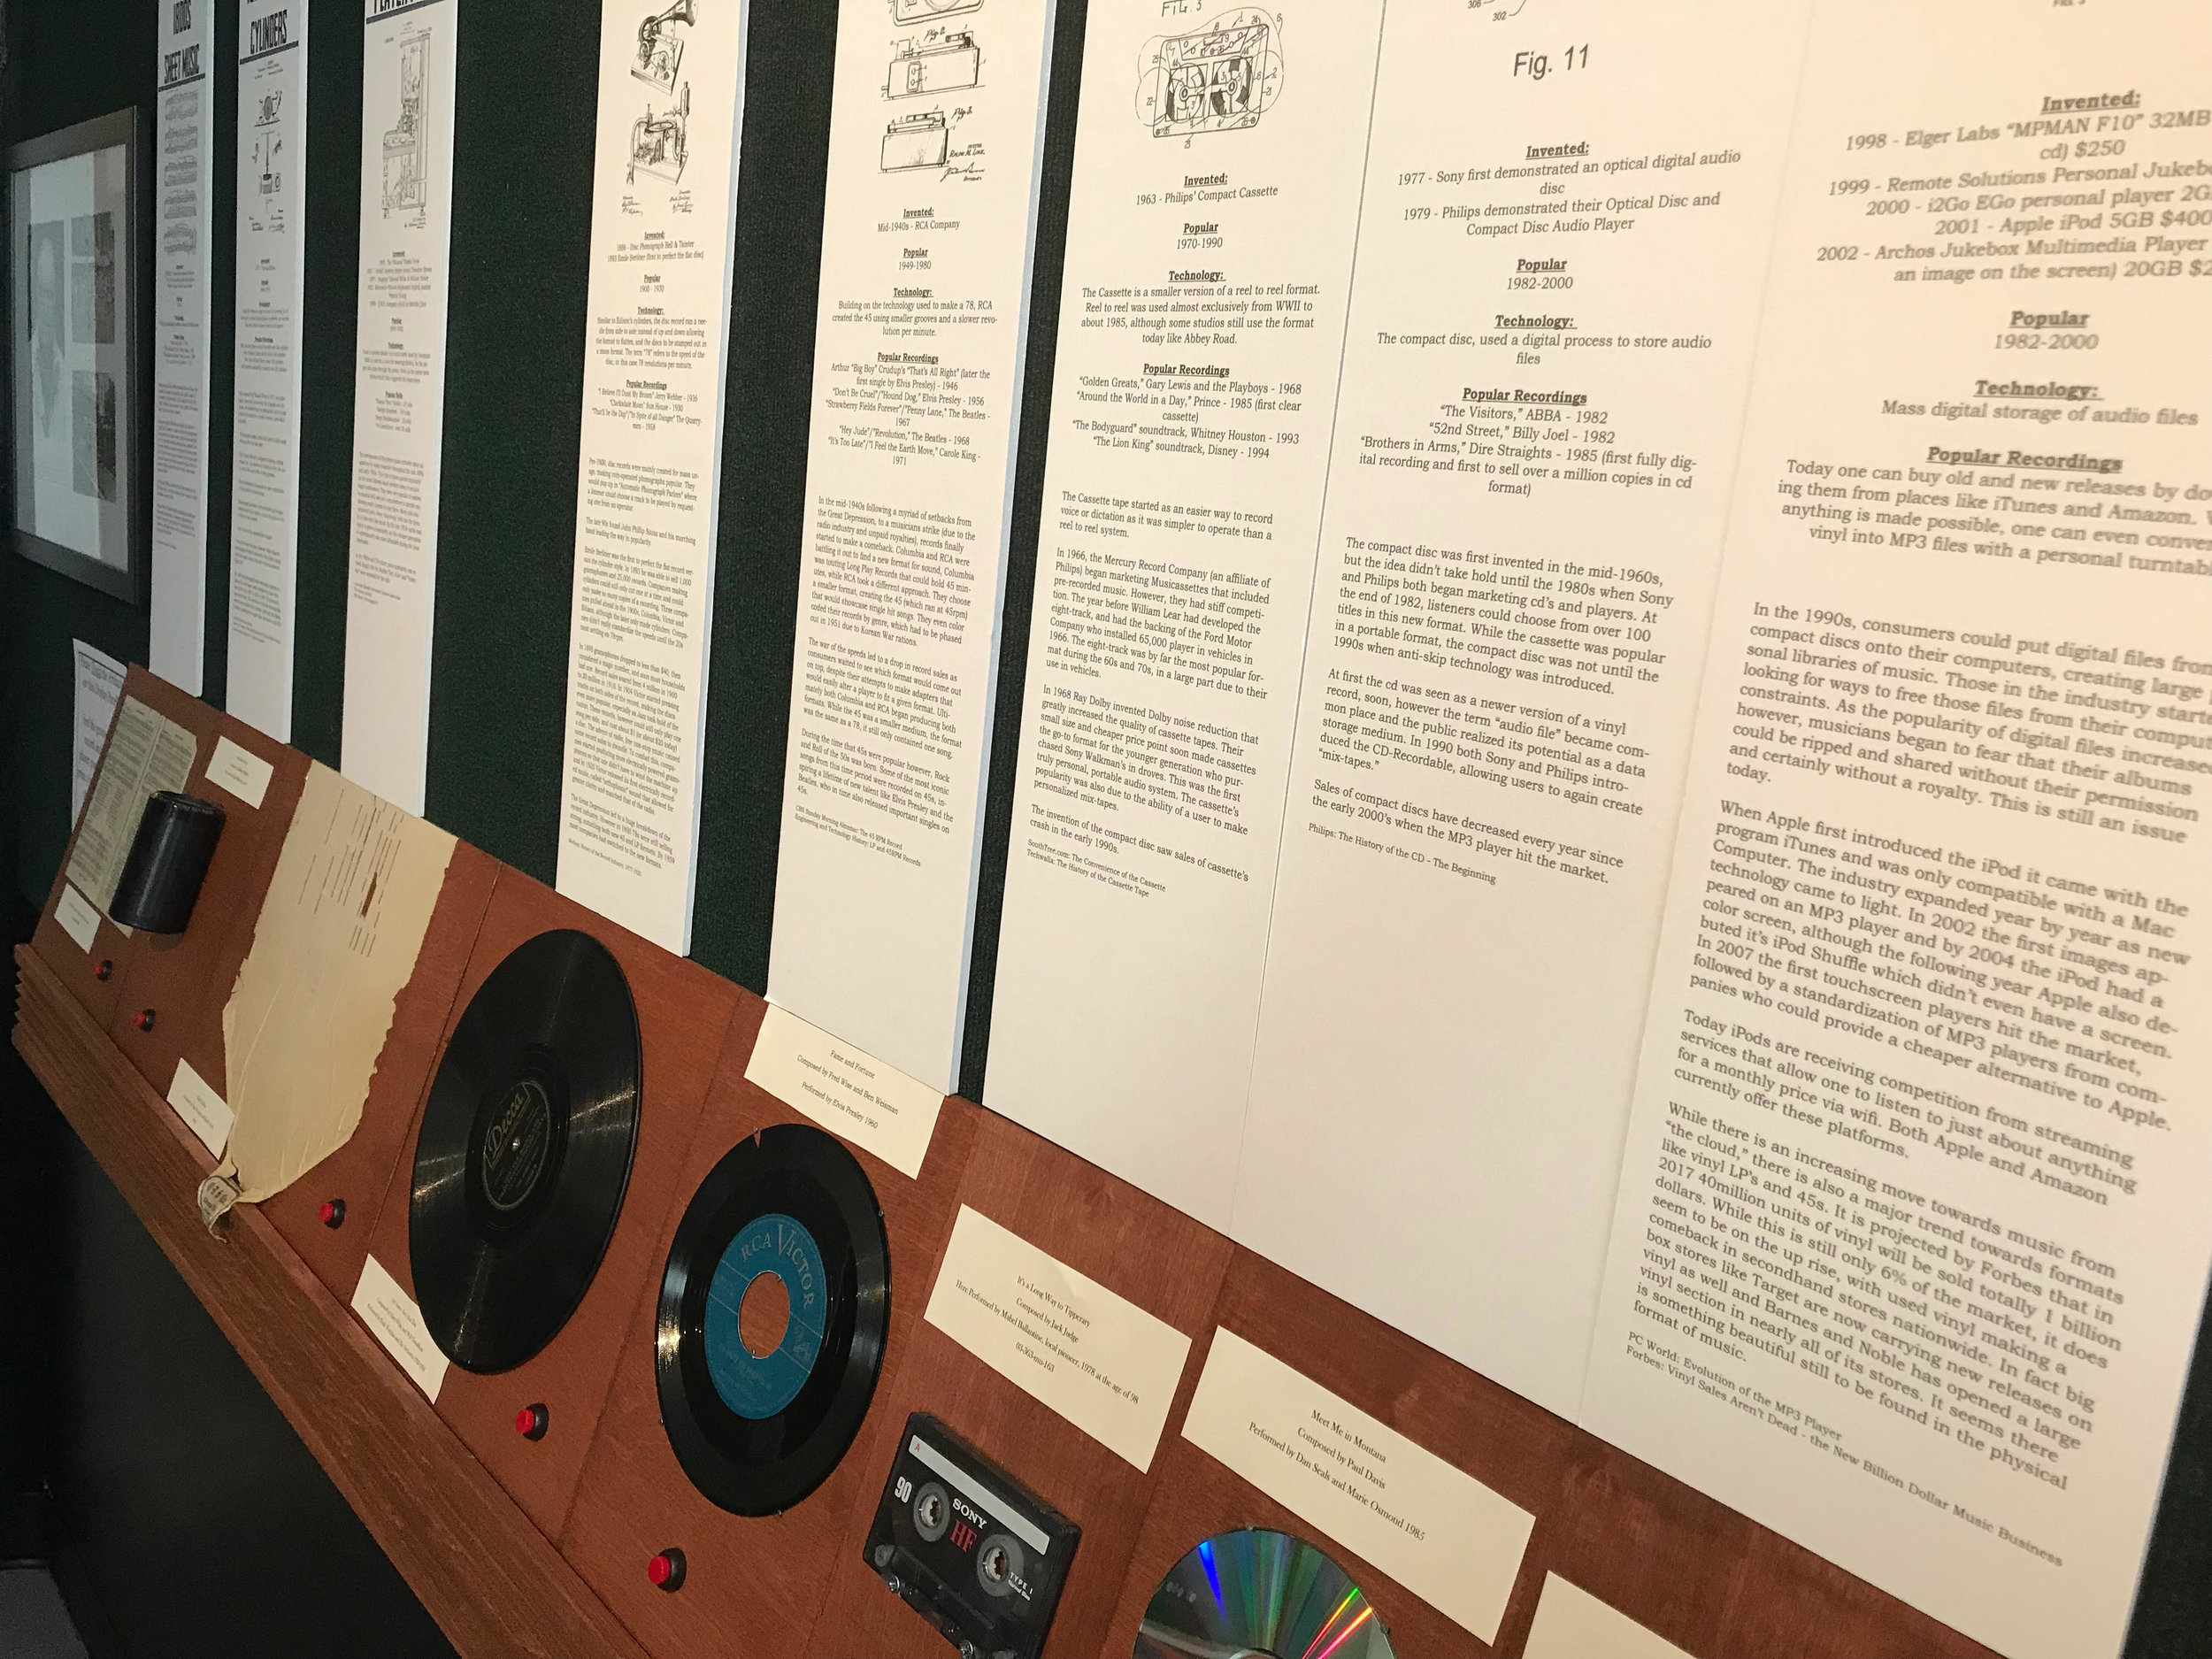 Interactive Exhibit Fund - Research shows that museum visitors, especially young ones, learn best when exhibits are interacting, engaging, and multi-sensory. Help us expand the interactive qualities of our exhibits by donating to this fund.